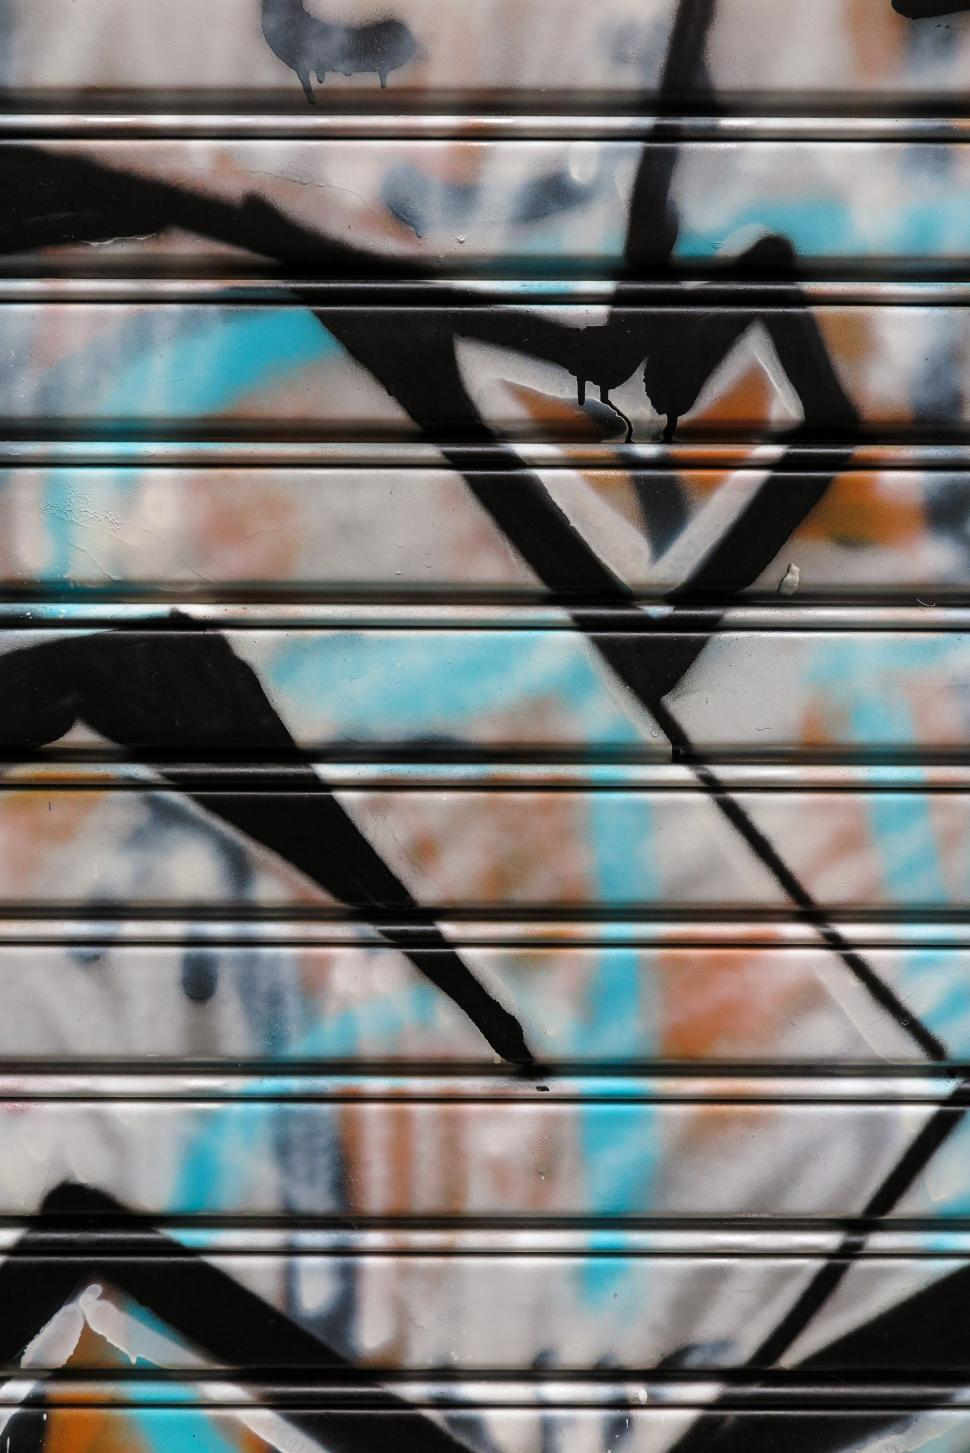 Download Free Stock HD Photo of Graffiti backgroud Online